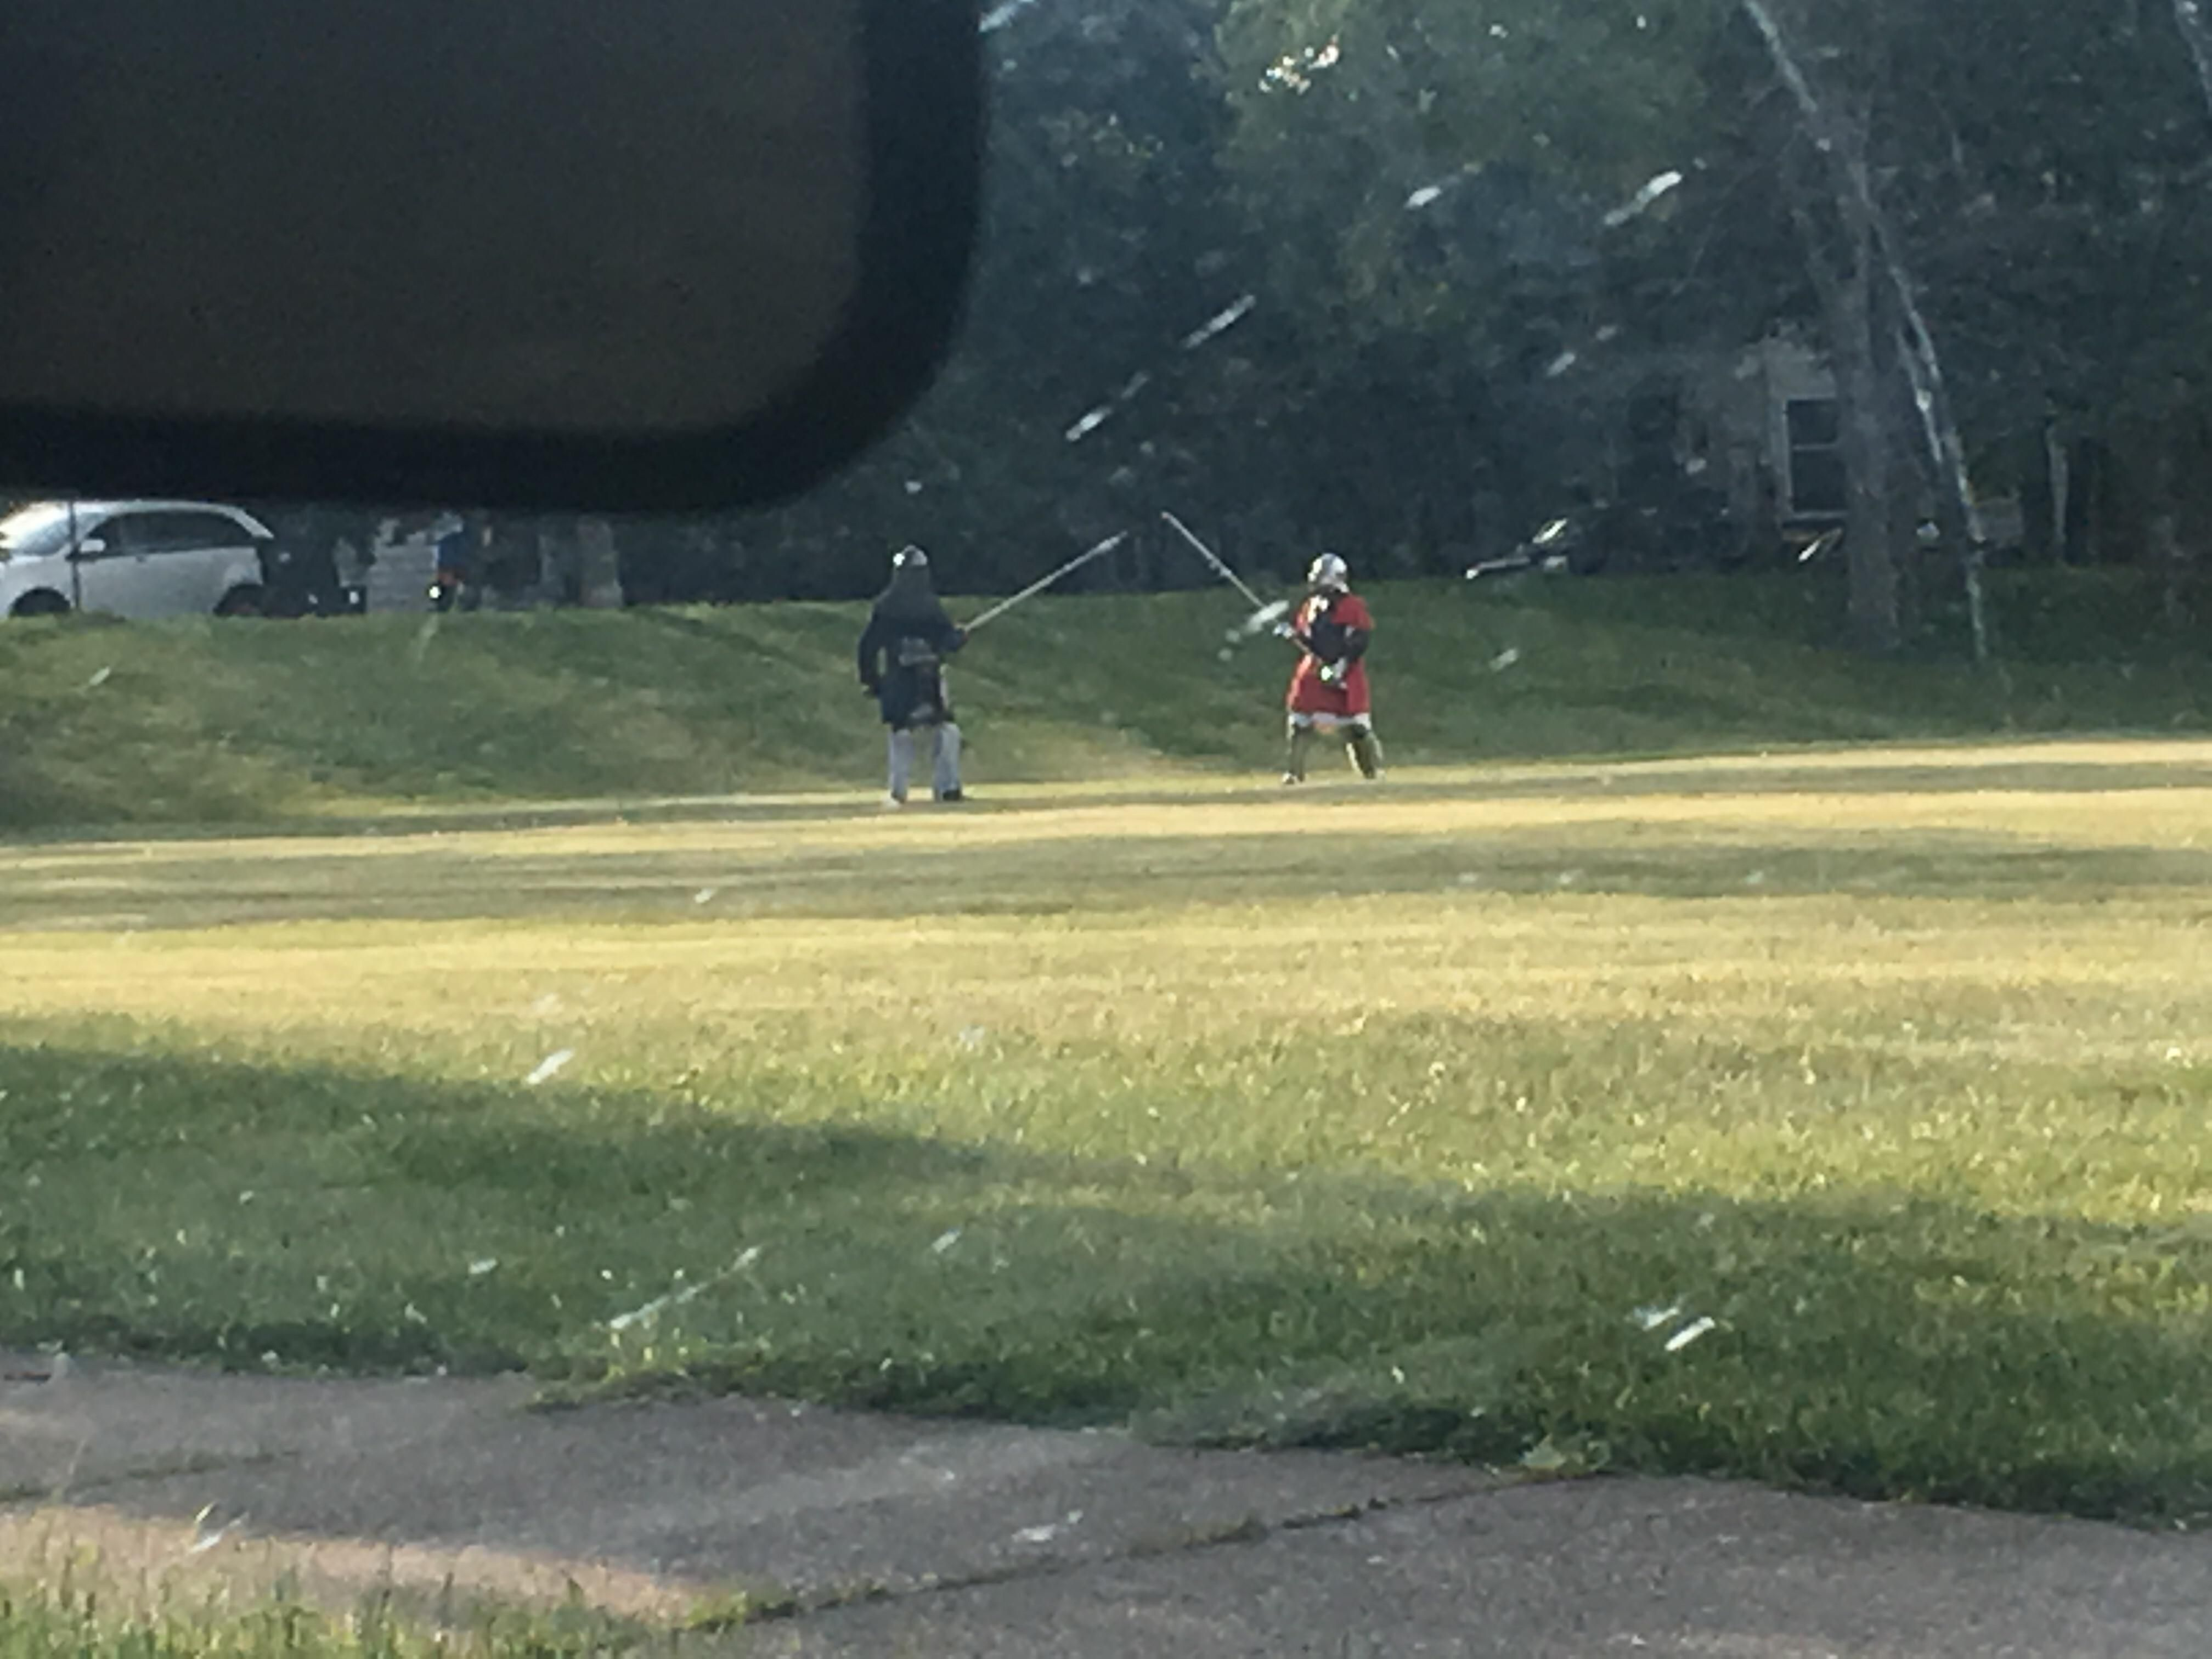 So I get home from work and these guys are doing this in the park across the street. Life is Awesome